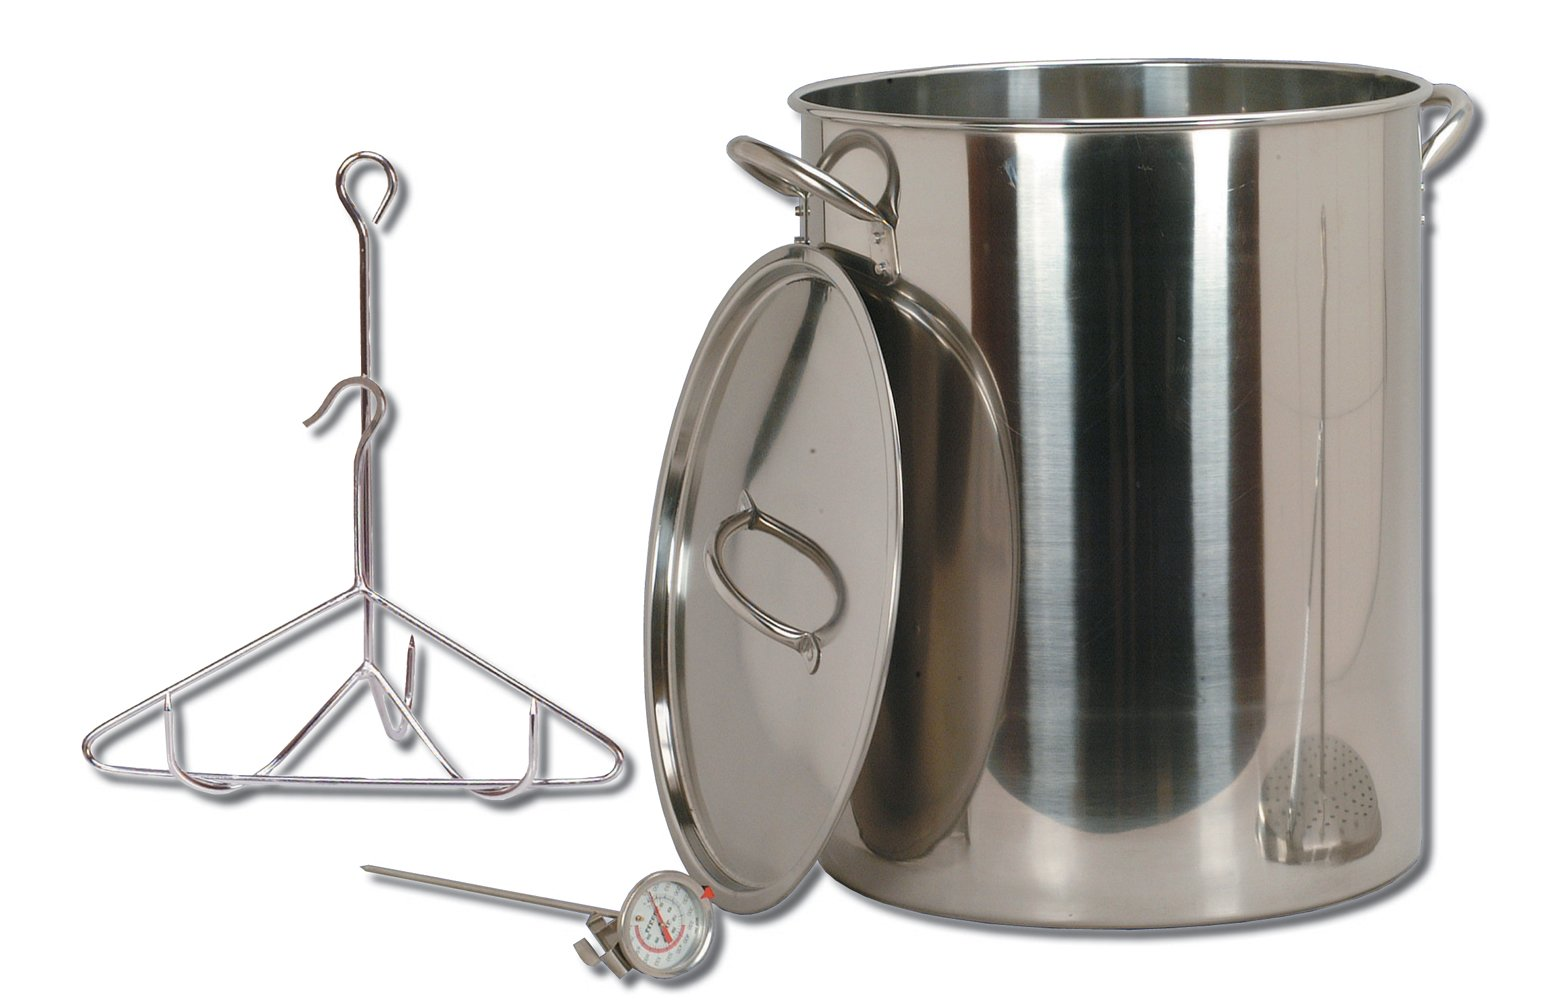 King Kooker SS26PKS 26-Quart Stainless Steel Turkey Pot Package by King Kooker